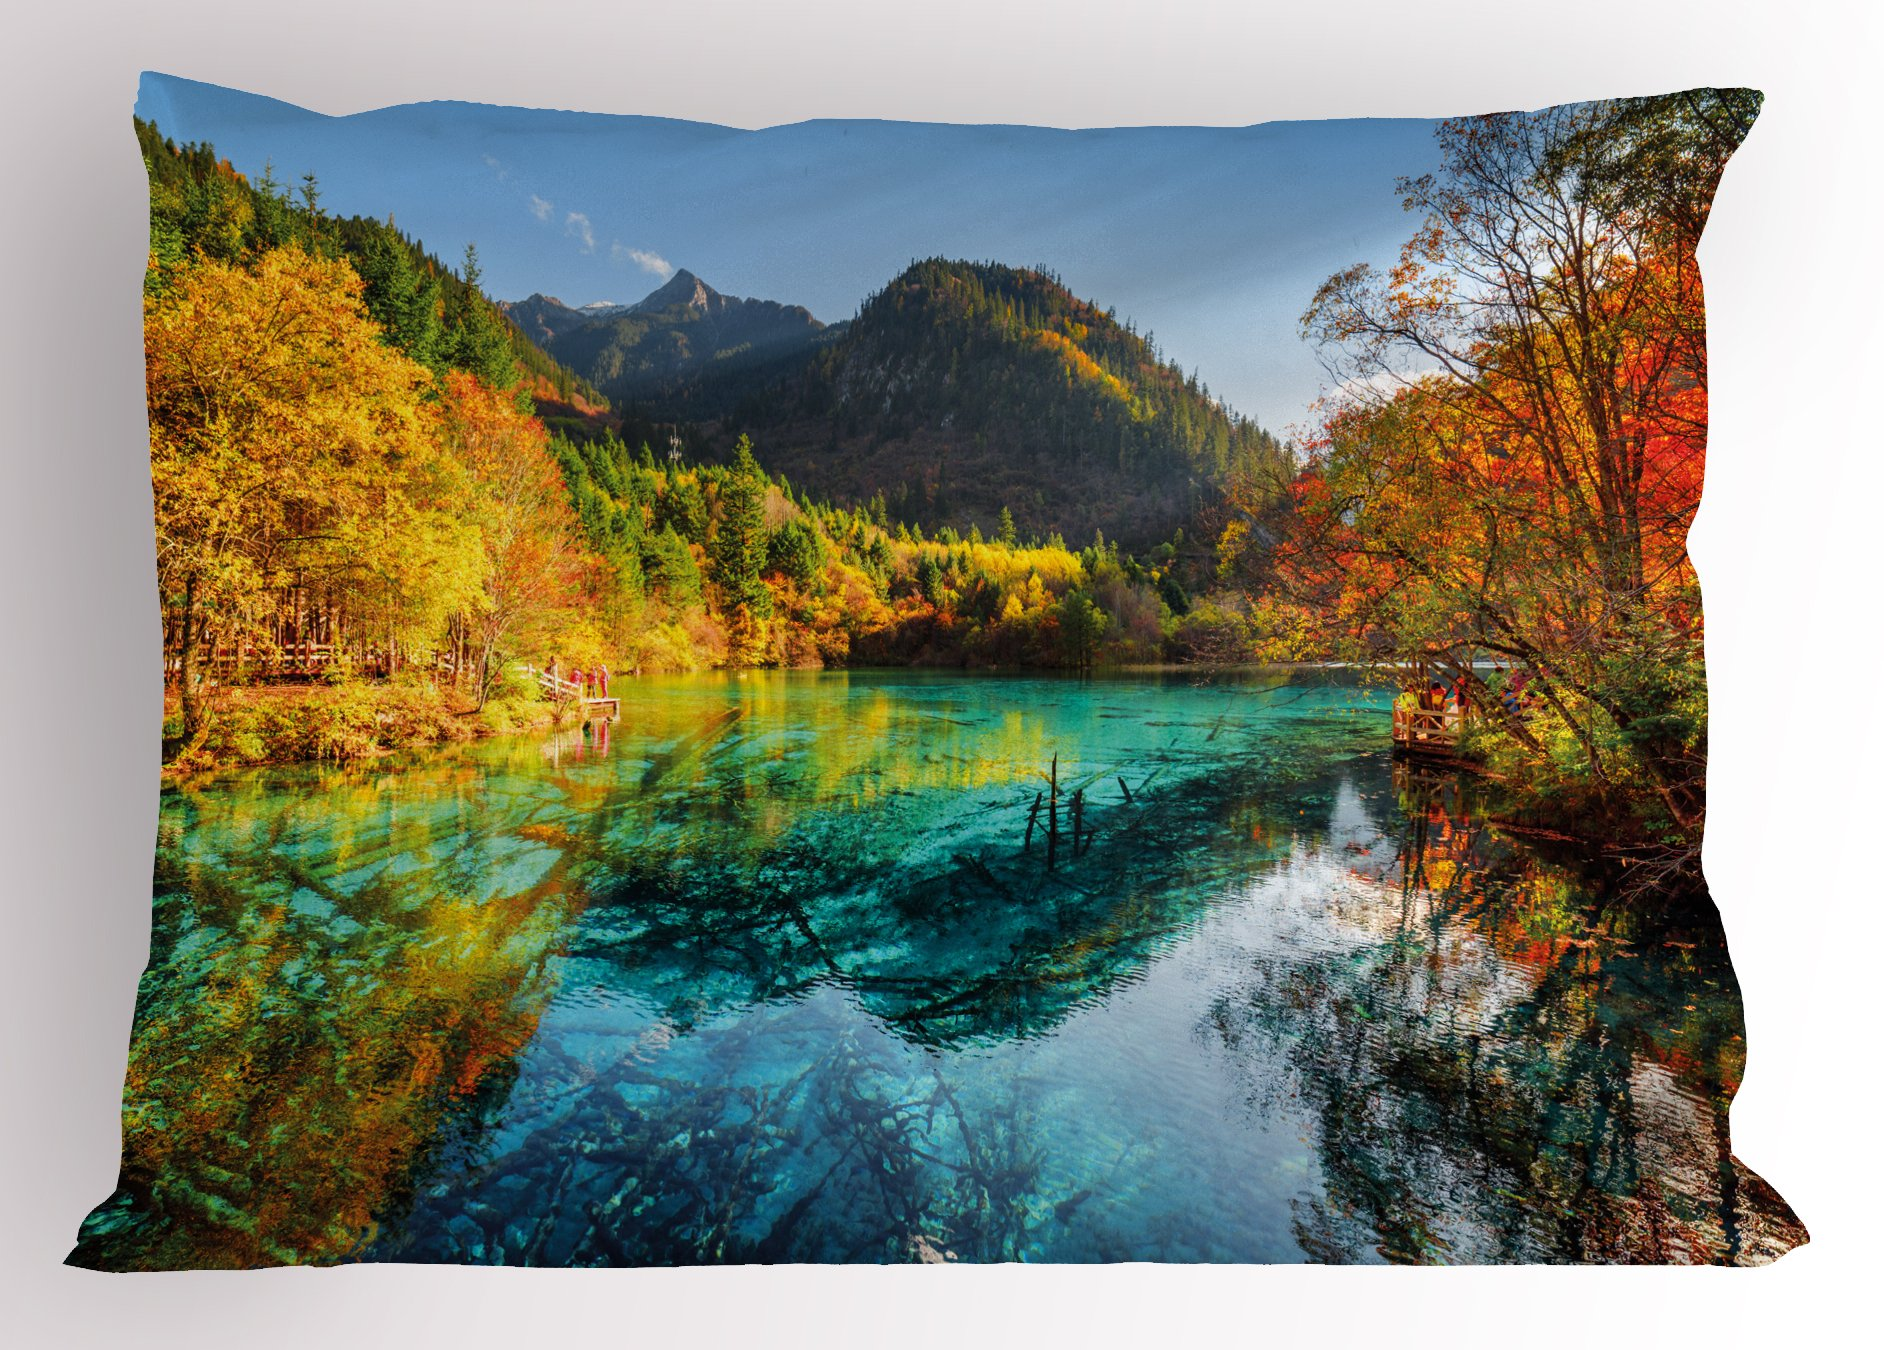 Lunarable Landscape Pillow Sham, Colorful View of Five Flower Lake with Azure Water Among Fall Woods in Jiuzhaigou, Decorative Standard Size Printed Pillowcase, 26 X 20 inches, Multicolor by Lunarable (Image #1)